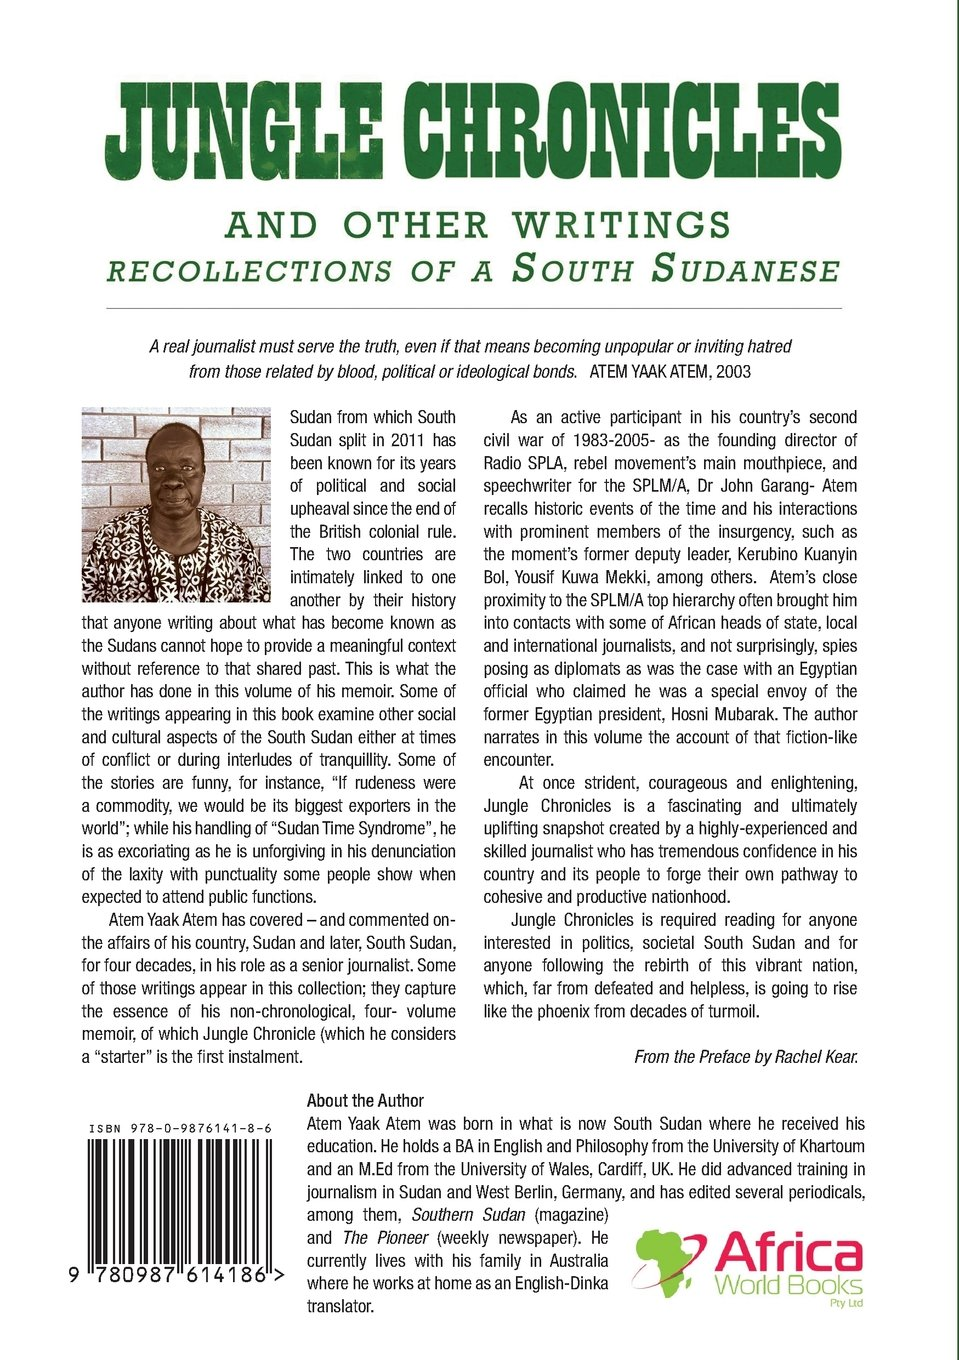 Jungle Chronicles and Other Writings: Recollections of a South Sudanese